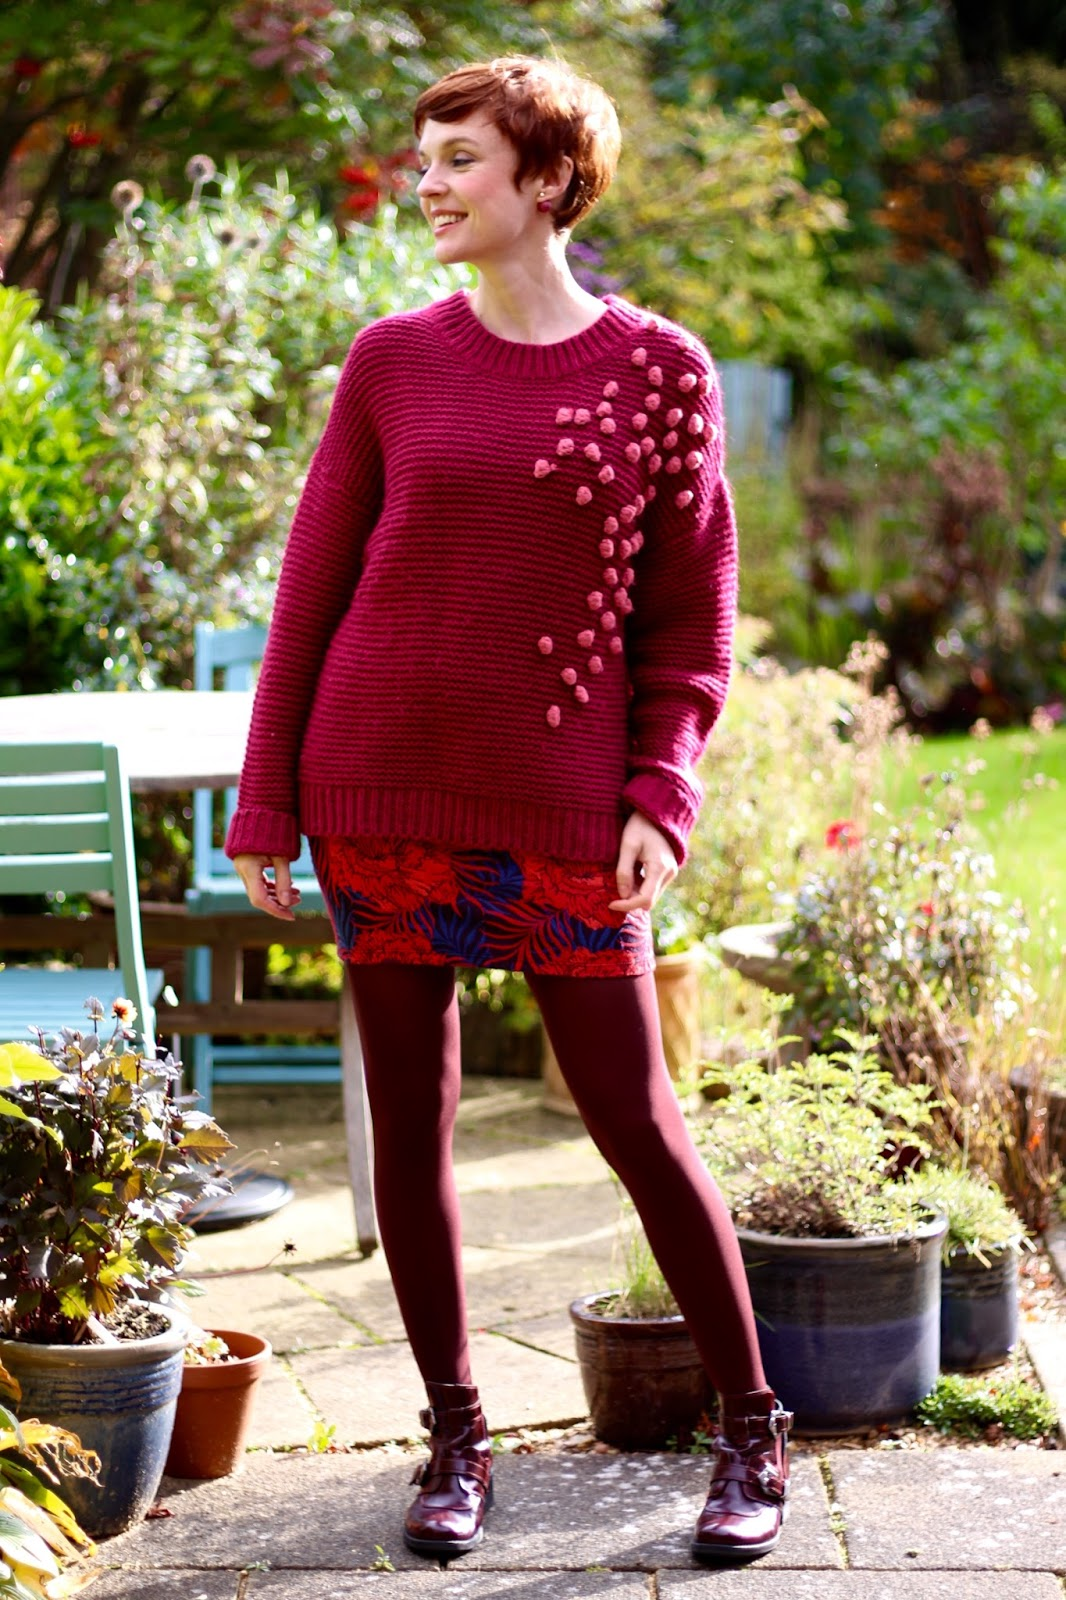 Chunky Statement Knit, Jacquard Miniskirt & Buckle Boots | Mini Skirts over 40 | Fake Fabulous